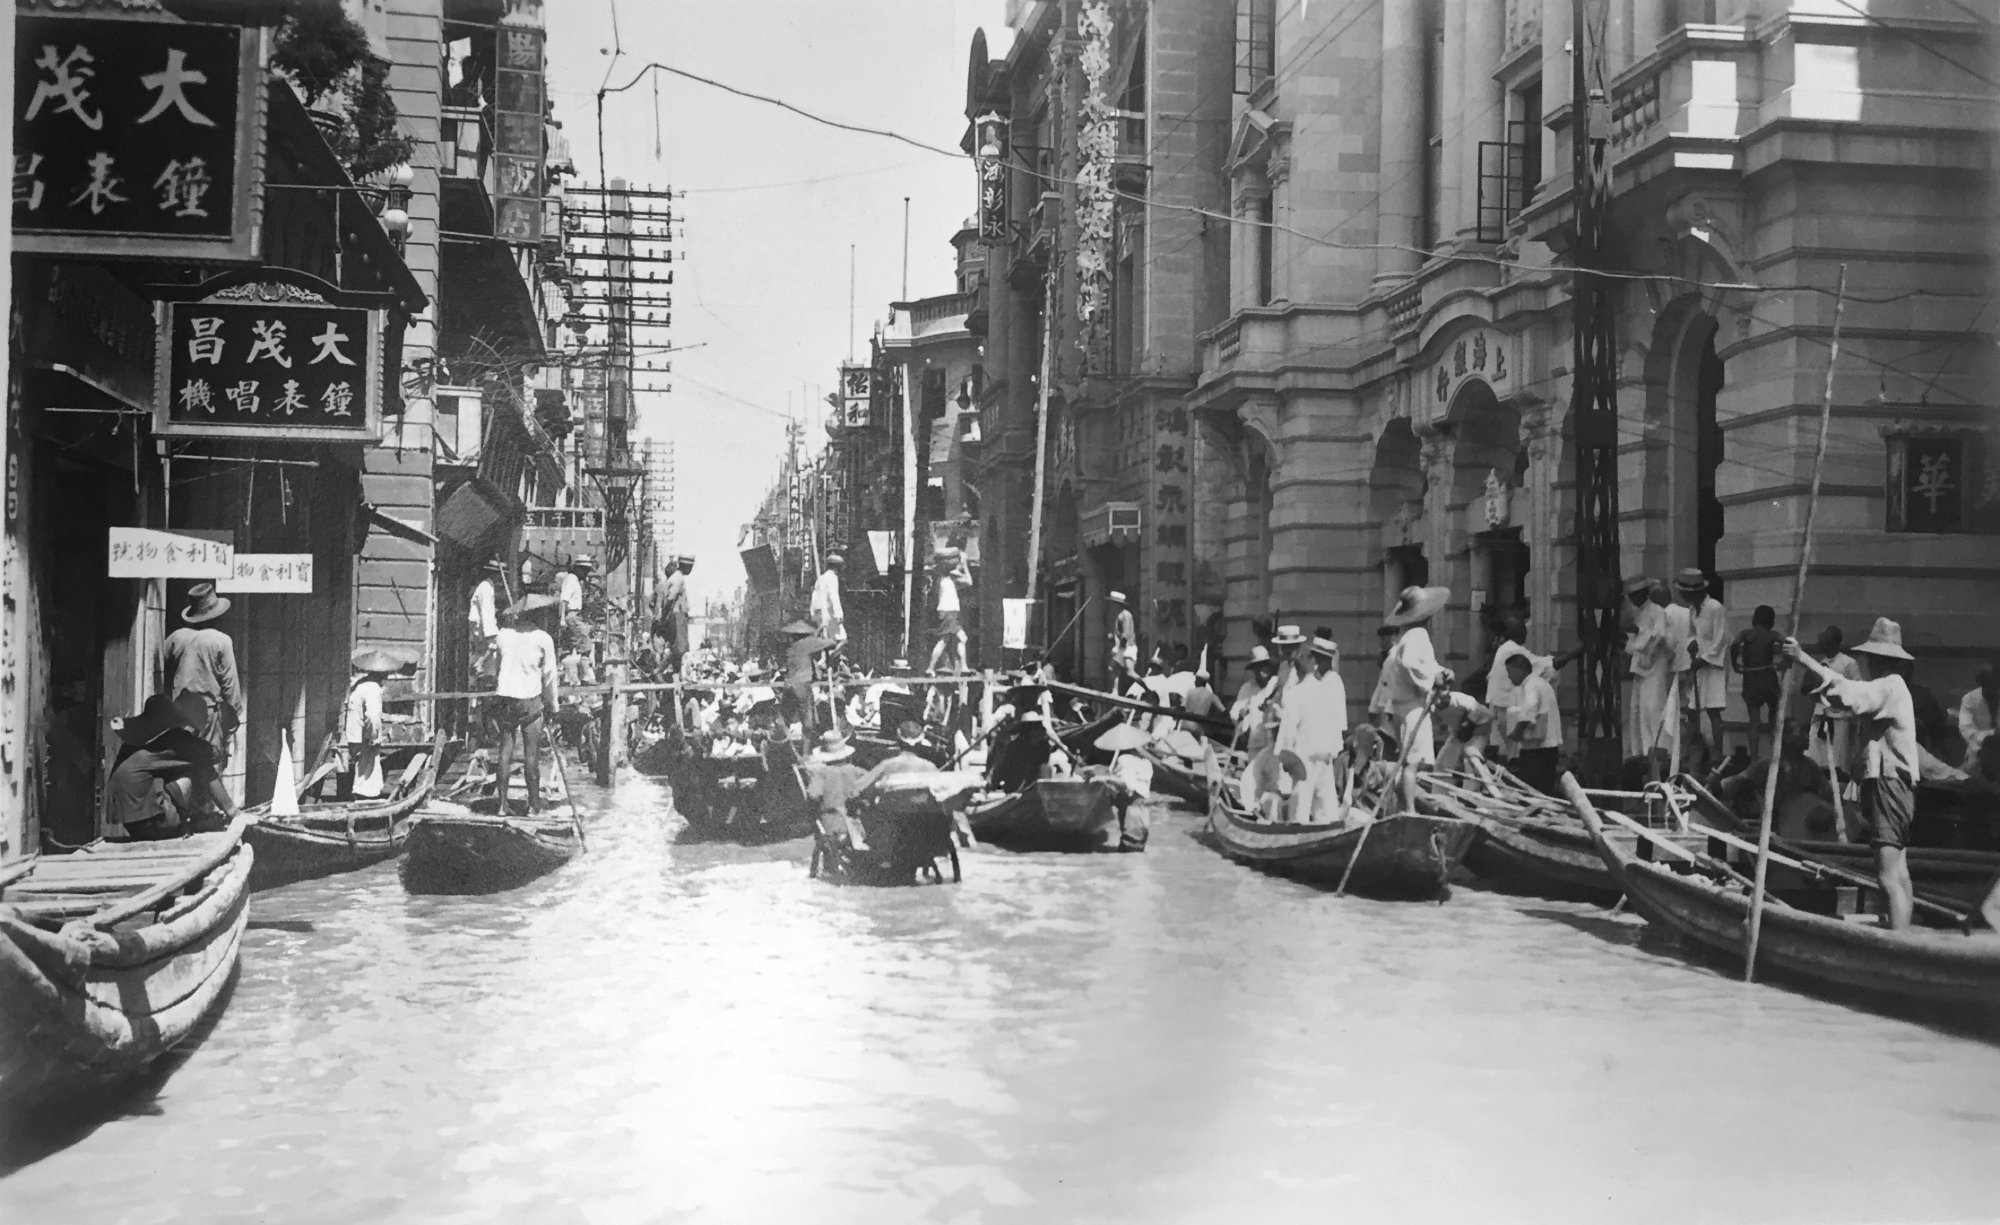 Picturing disaster: The 1931 Wuhan flood | China Dialogue